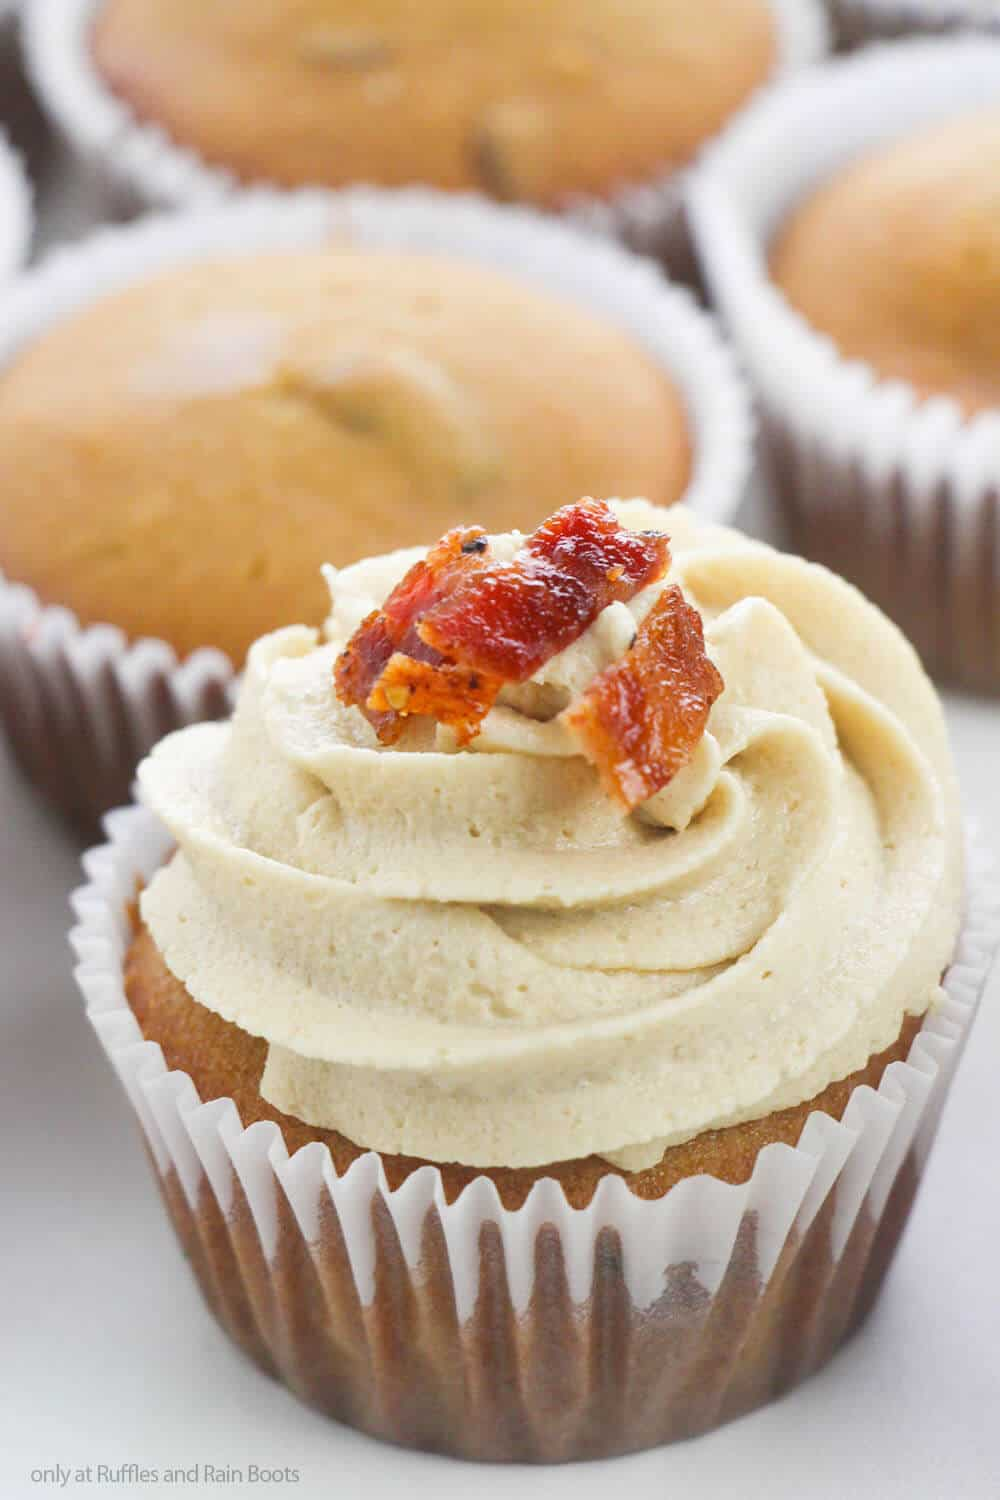 overhead view of easy cupcake with maple flavoring and bacon pieces on top